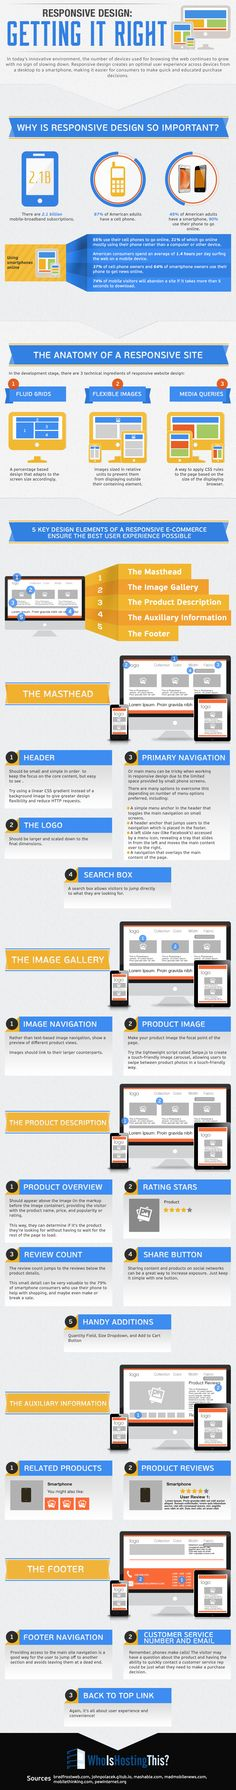 Infographic: Responsive Web Design - Getting it Right